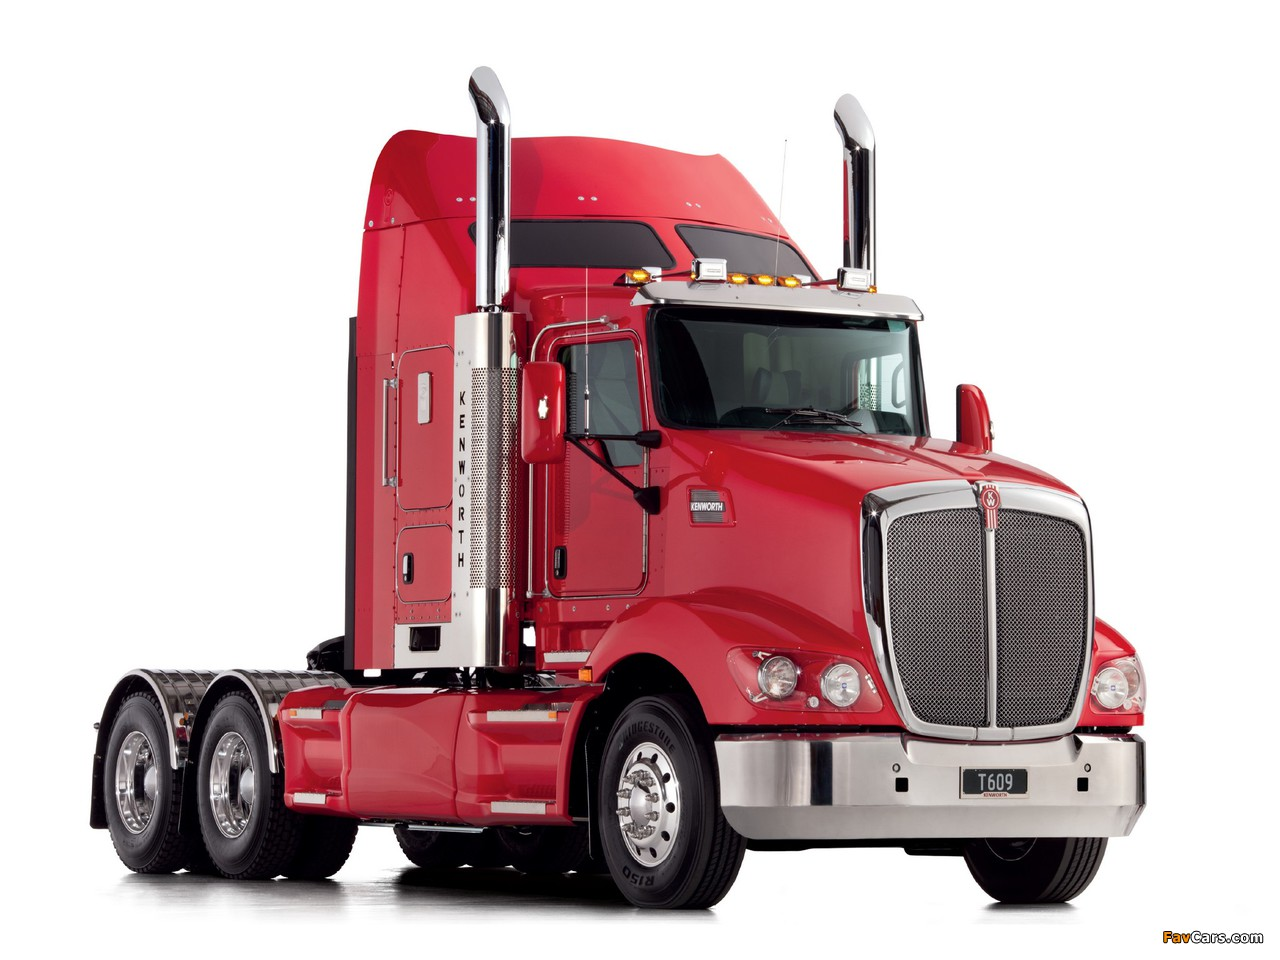 Kenworth T609 2011 pictures (1280 x 960)